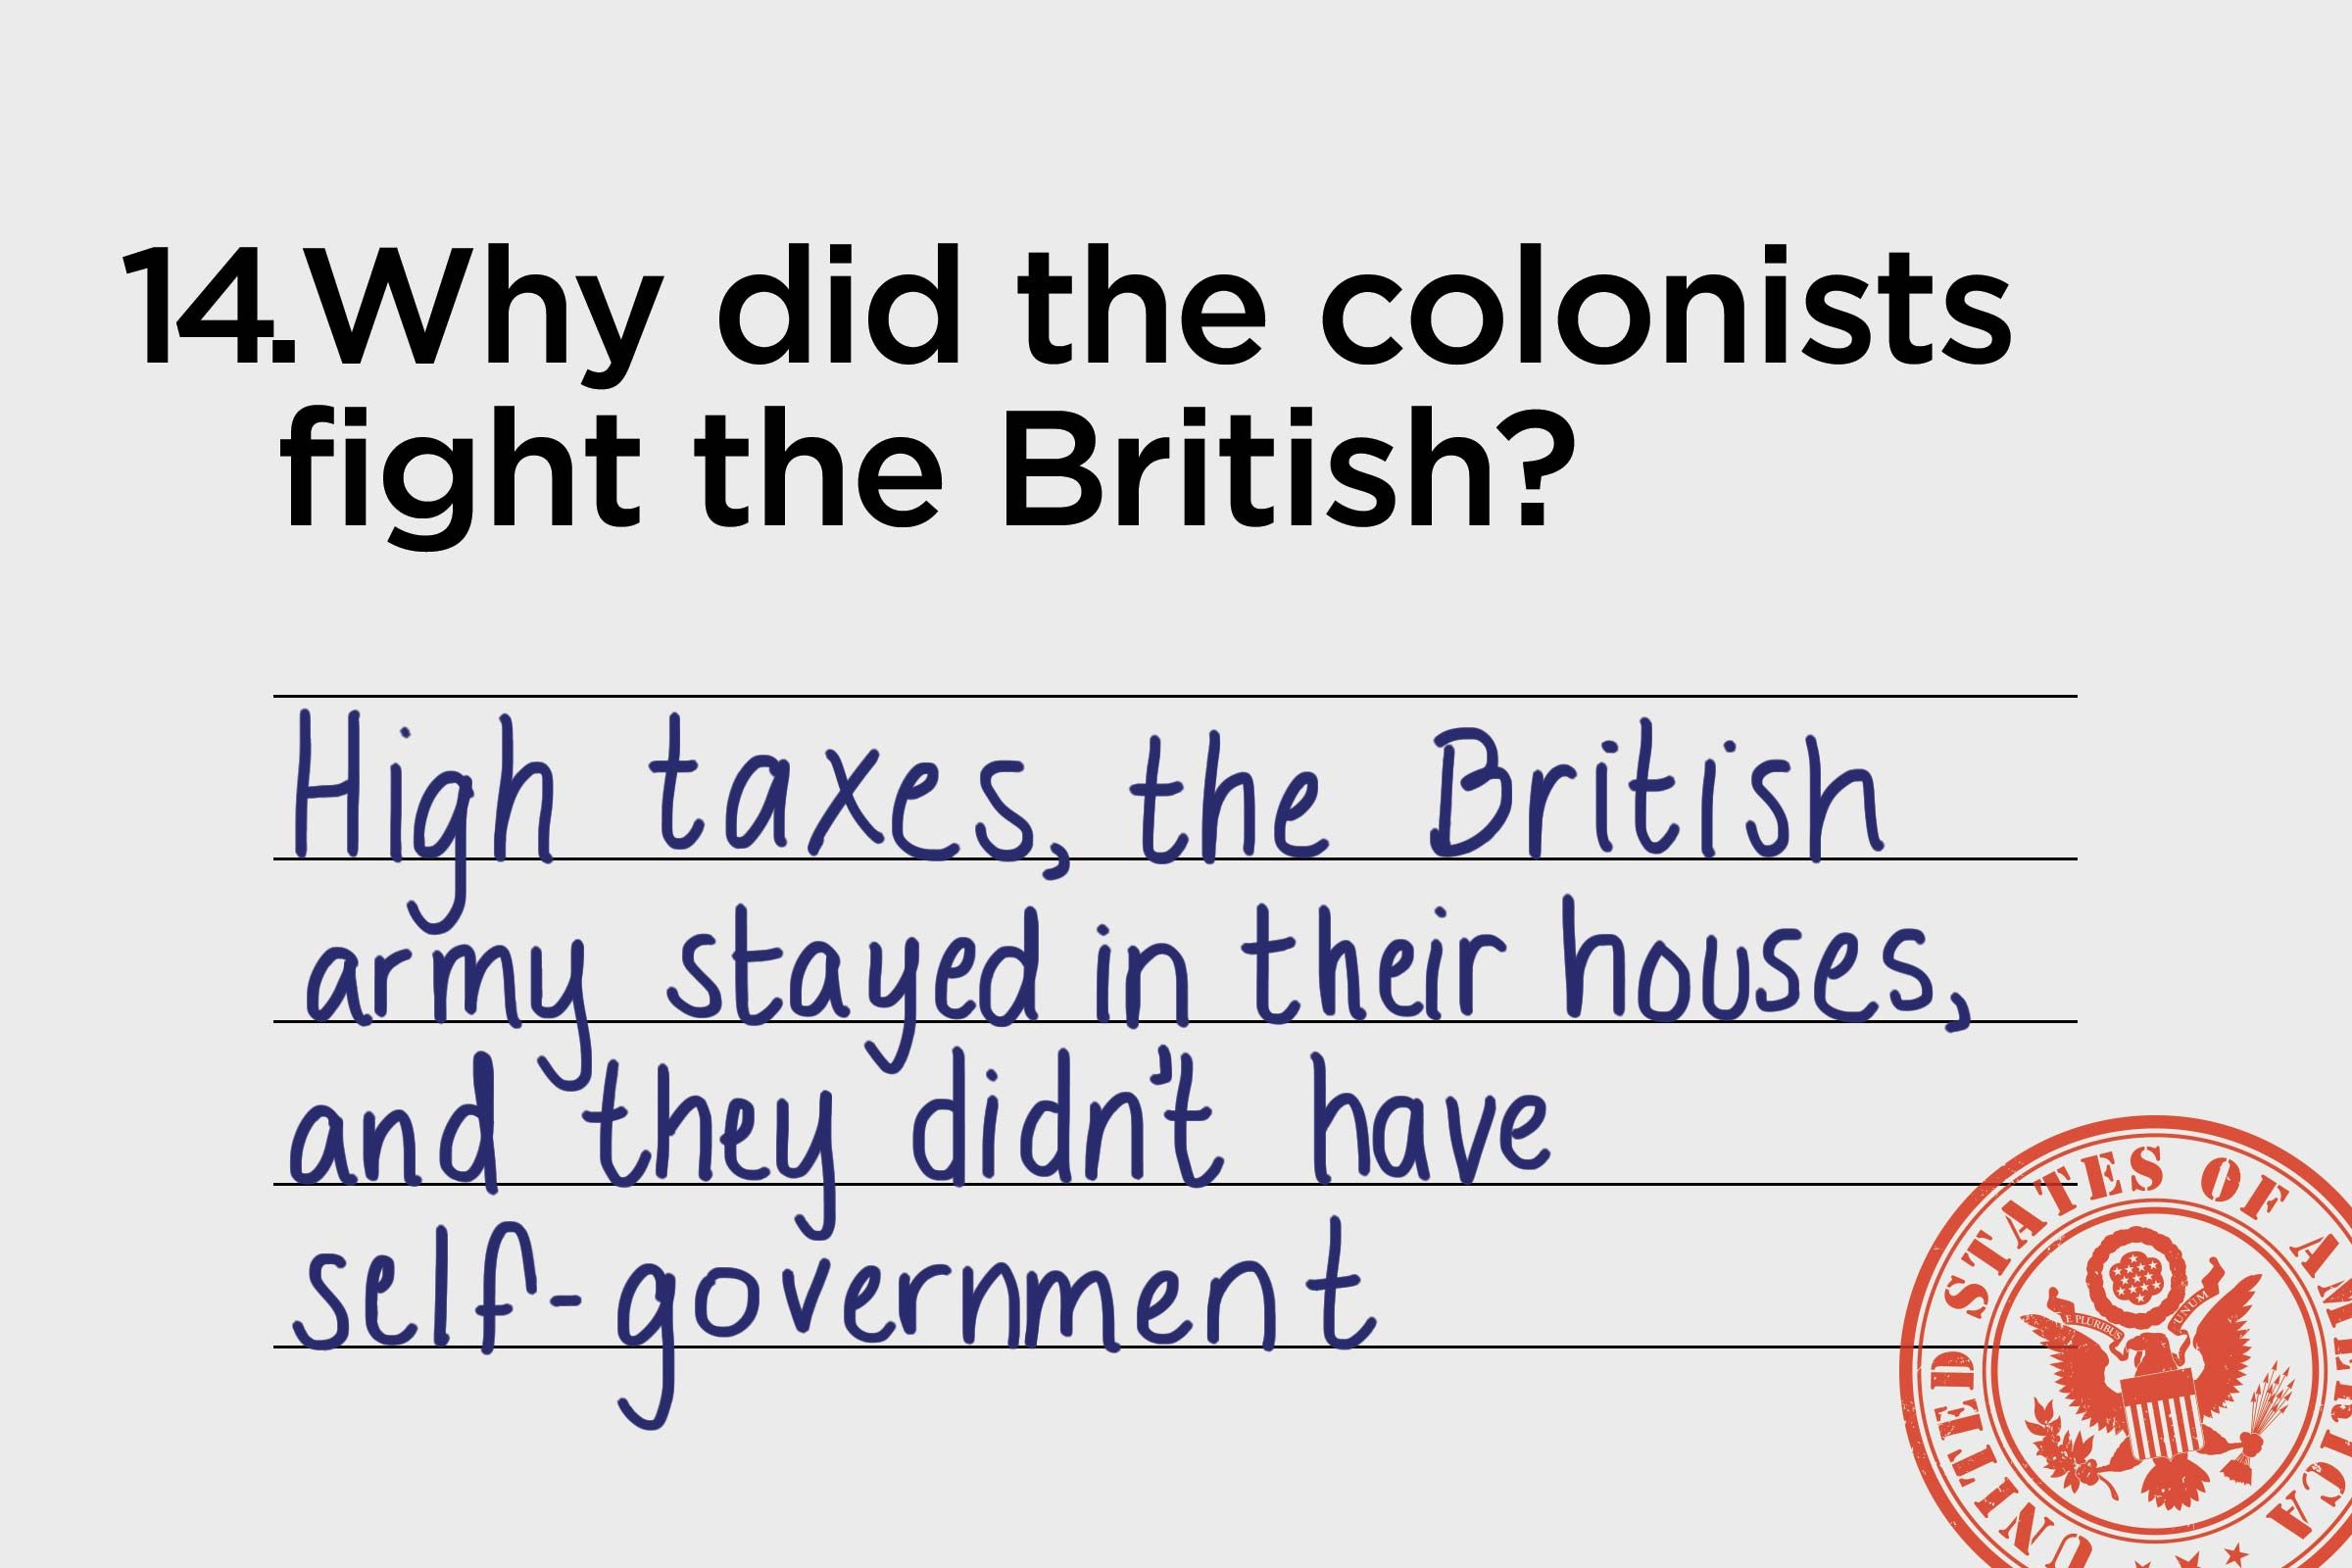 high taxes, the british army stayed in their houses